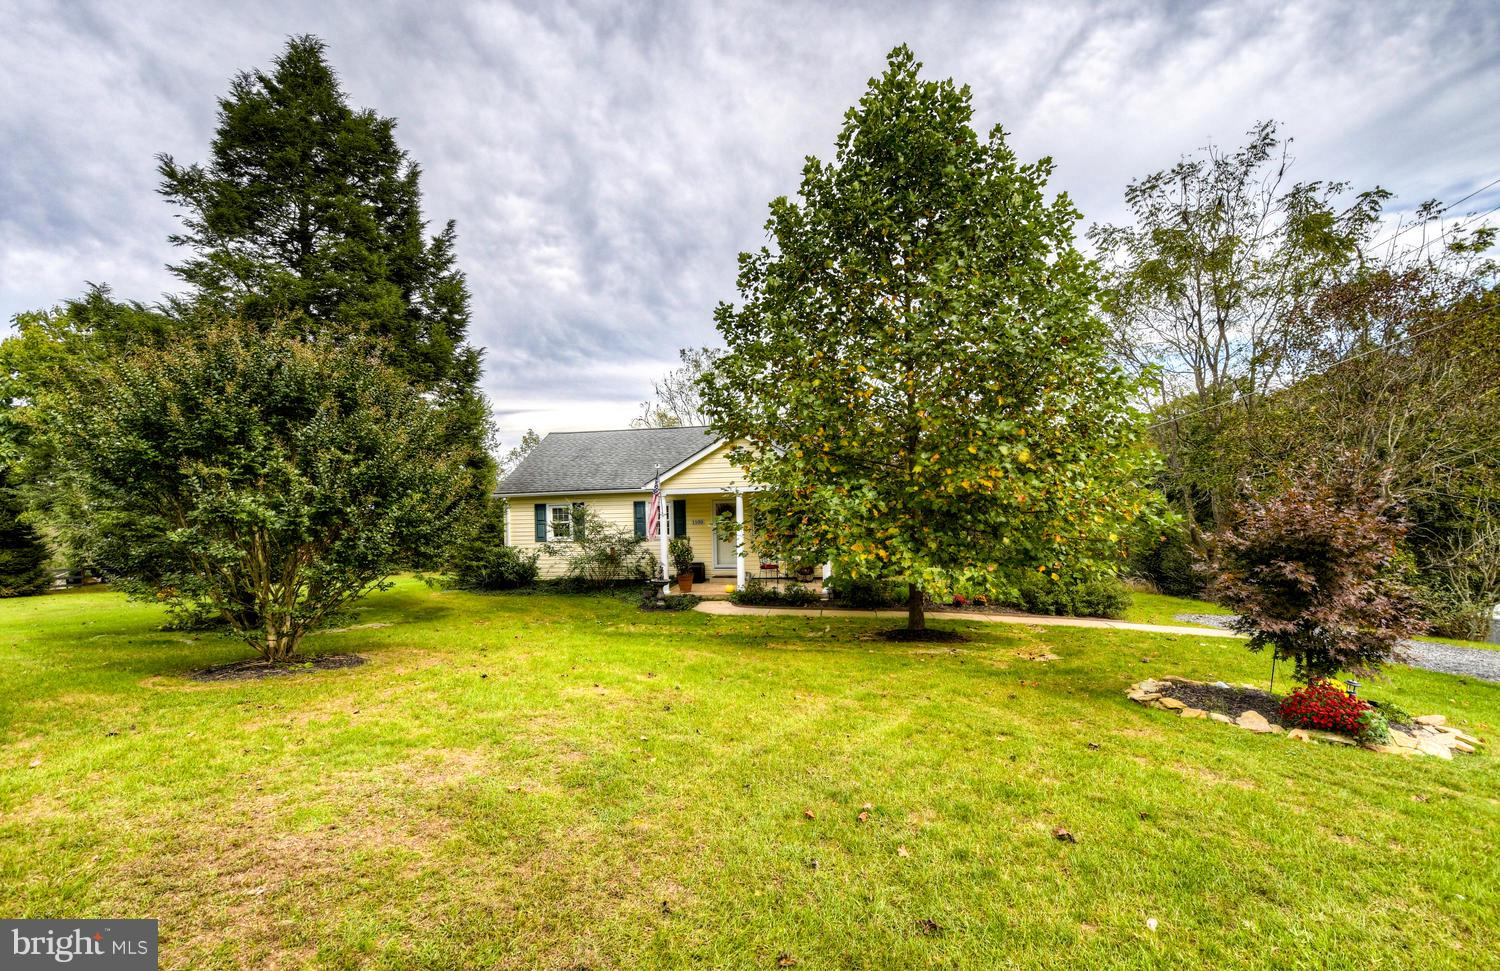 1100 BERNOUDY ROAD, WHITE HALL, MD 21161